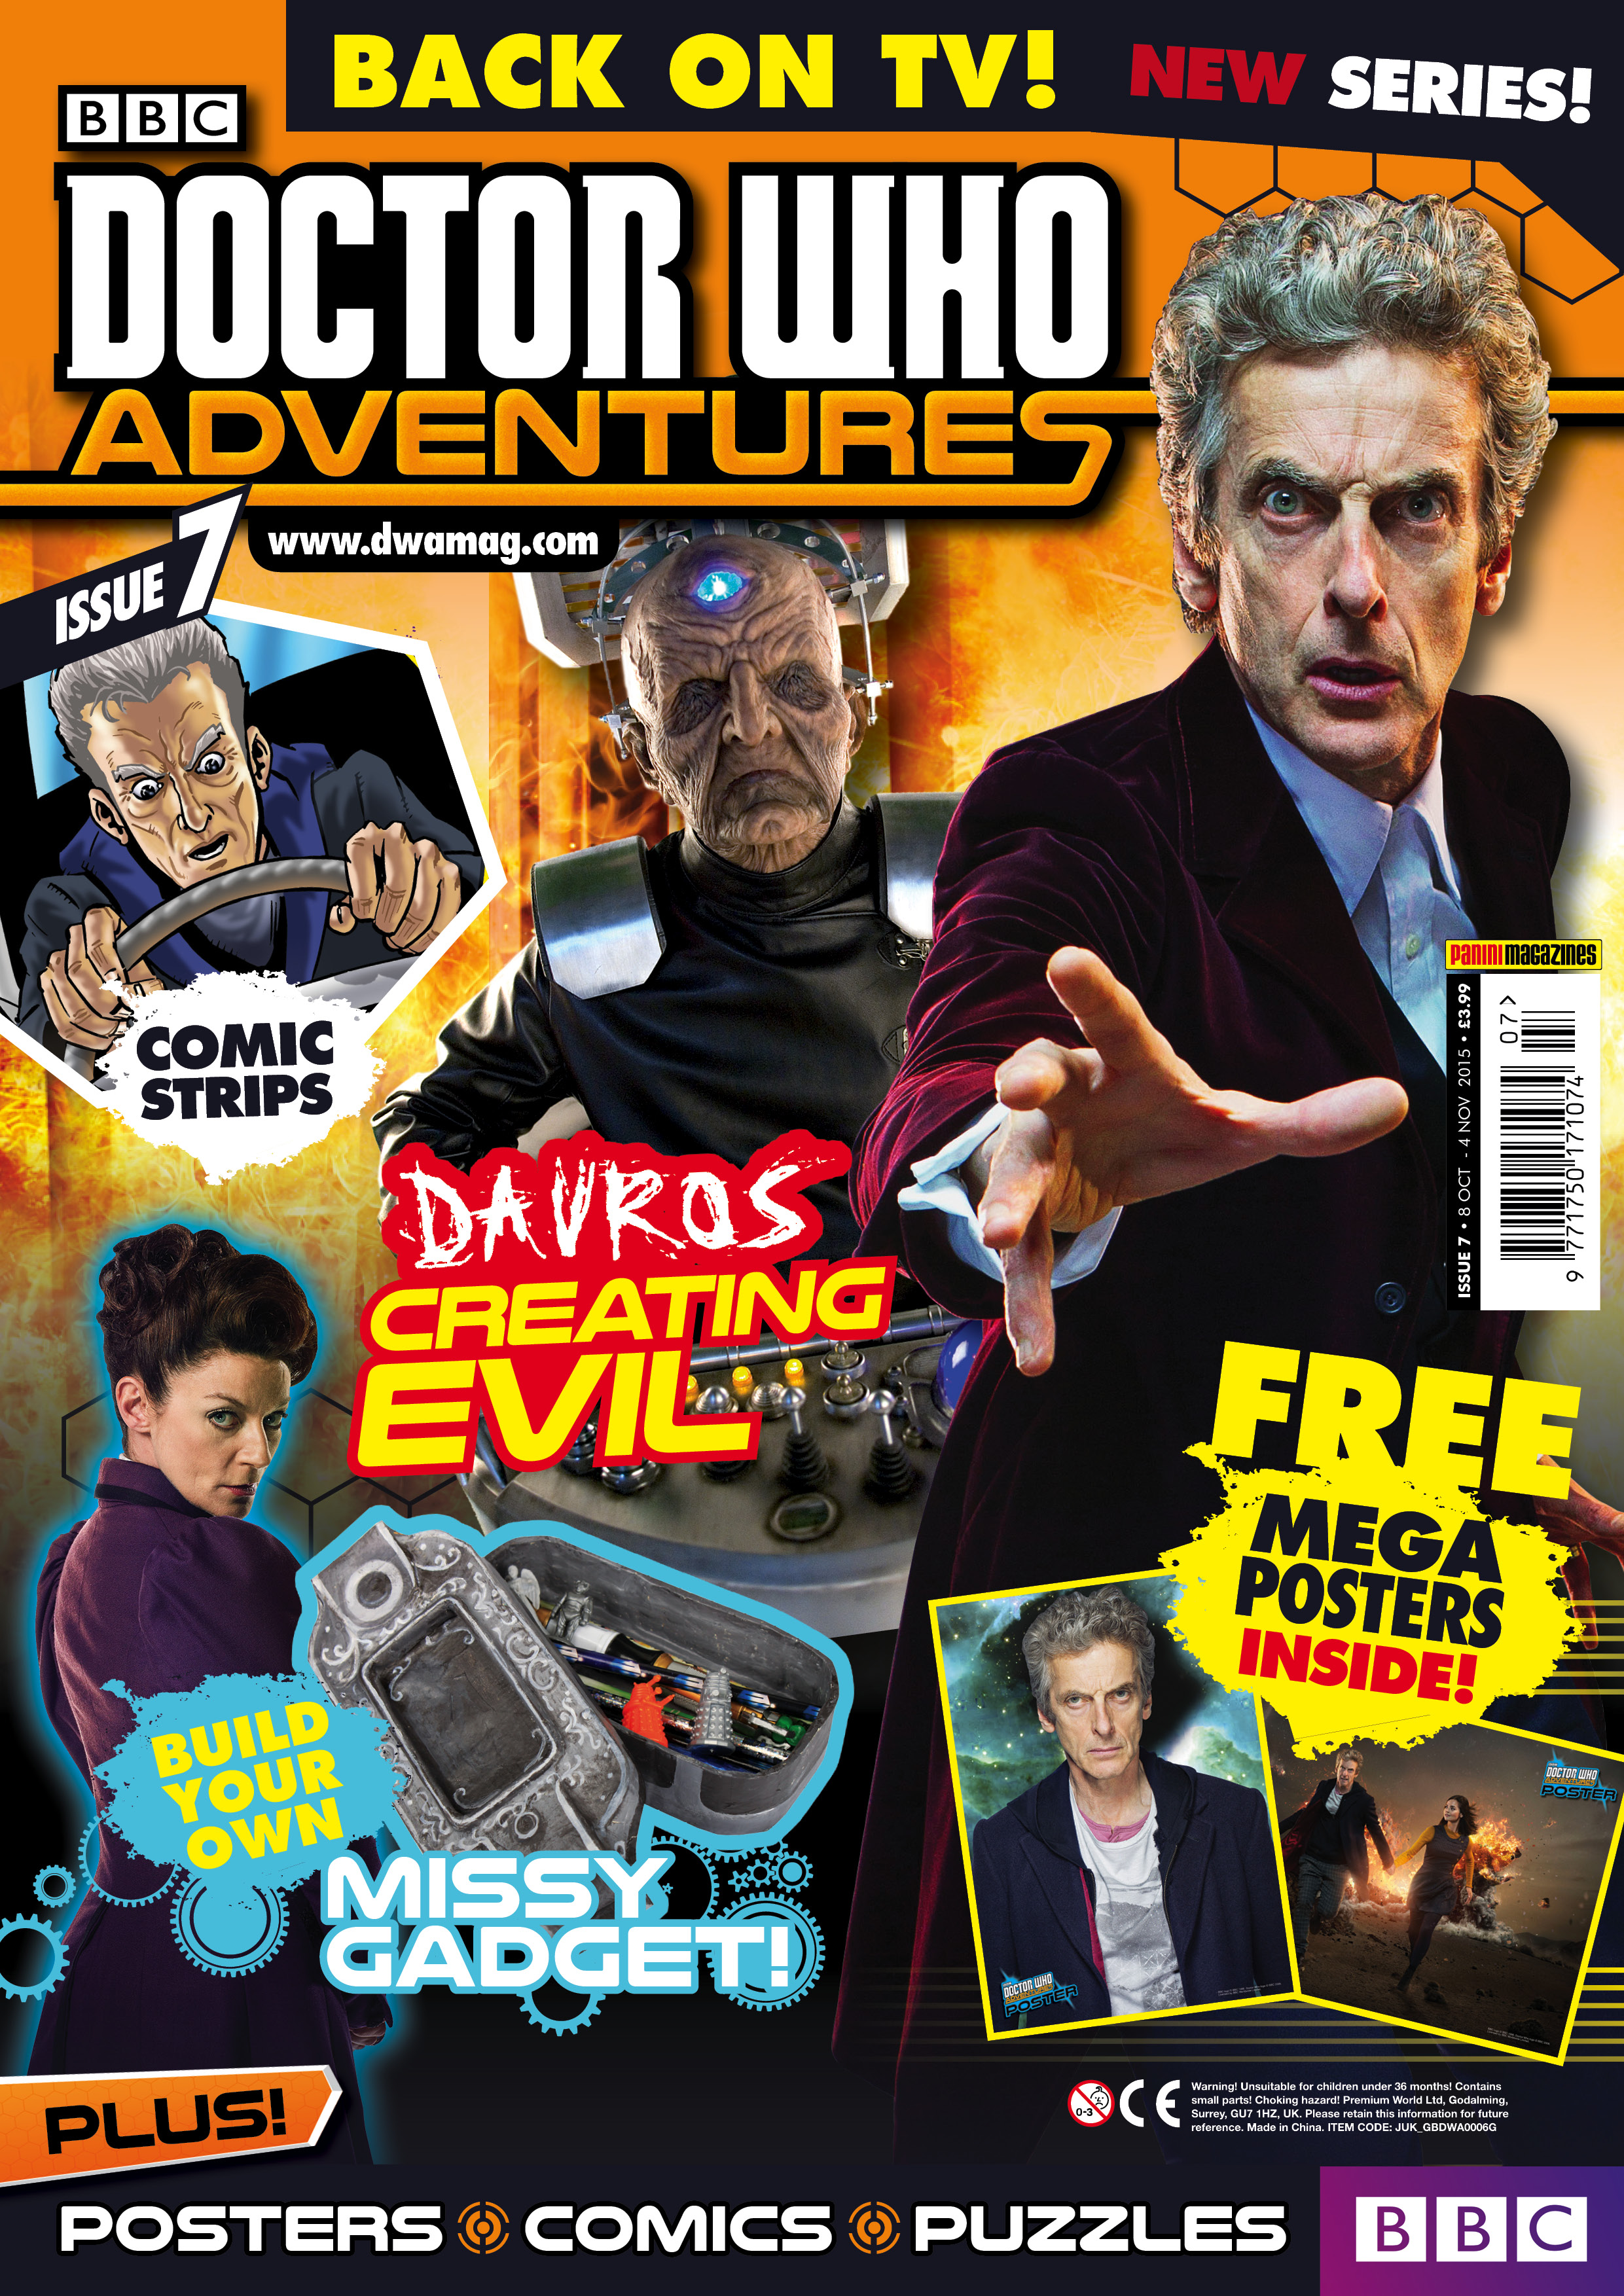 Doctor Who Adventures issue 7